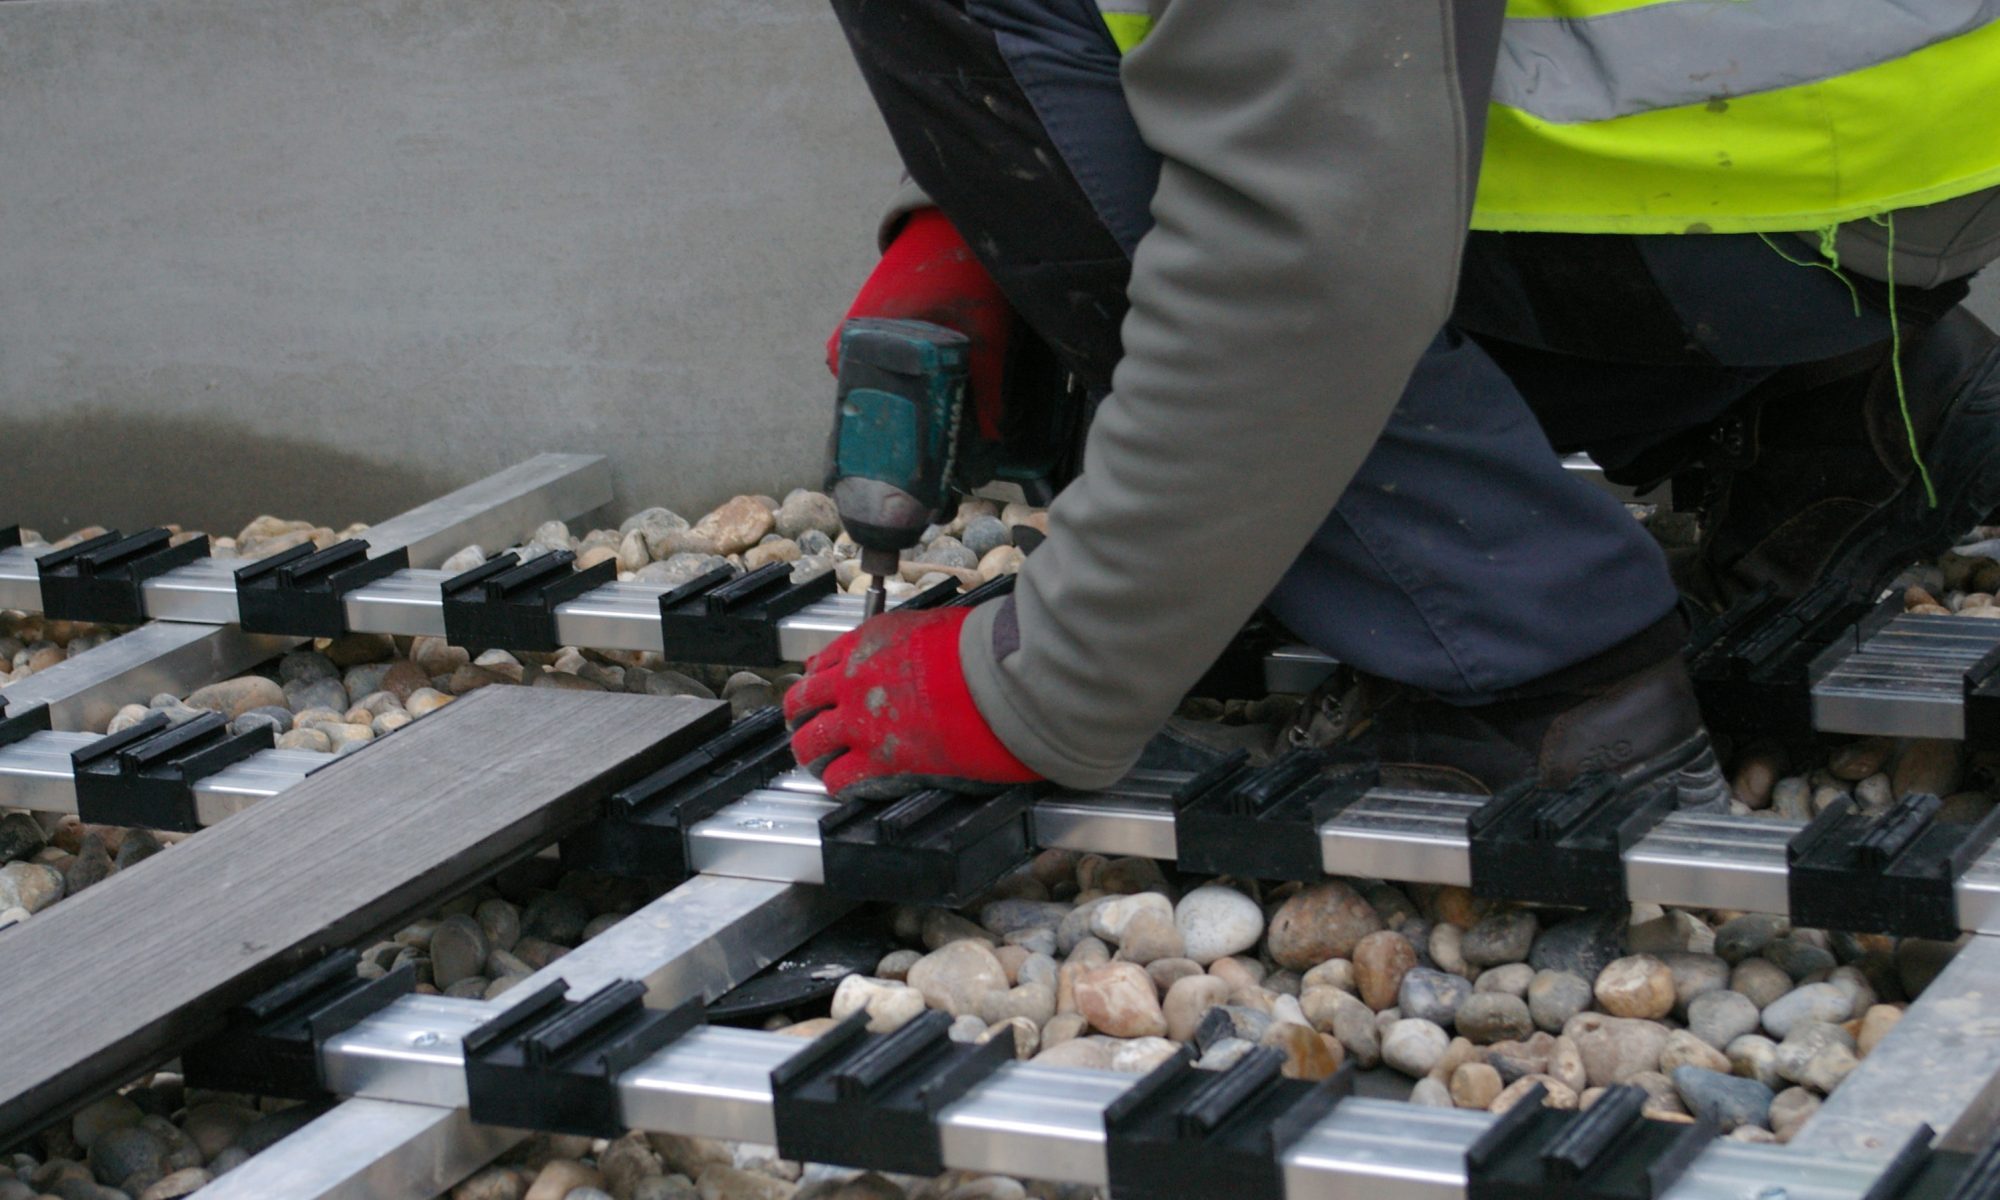 iDecking composite decking fixing joists 4